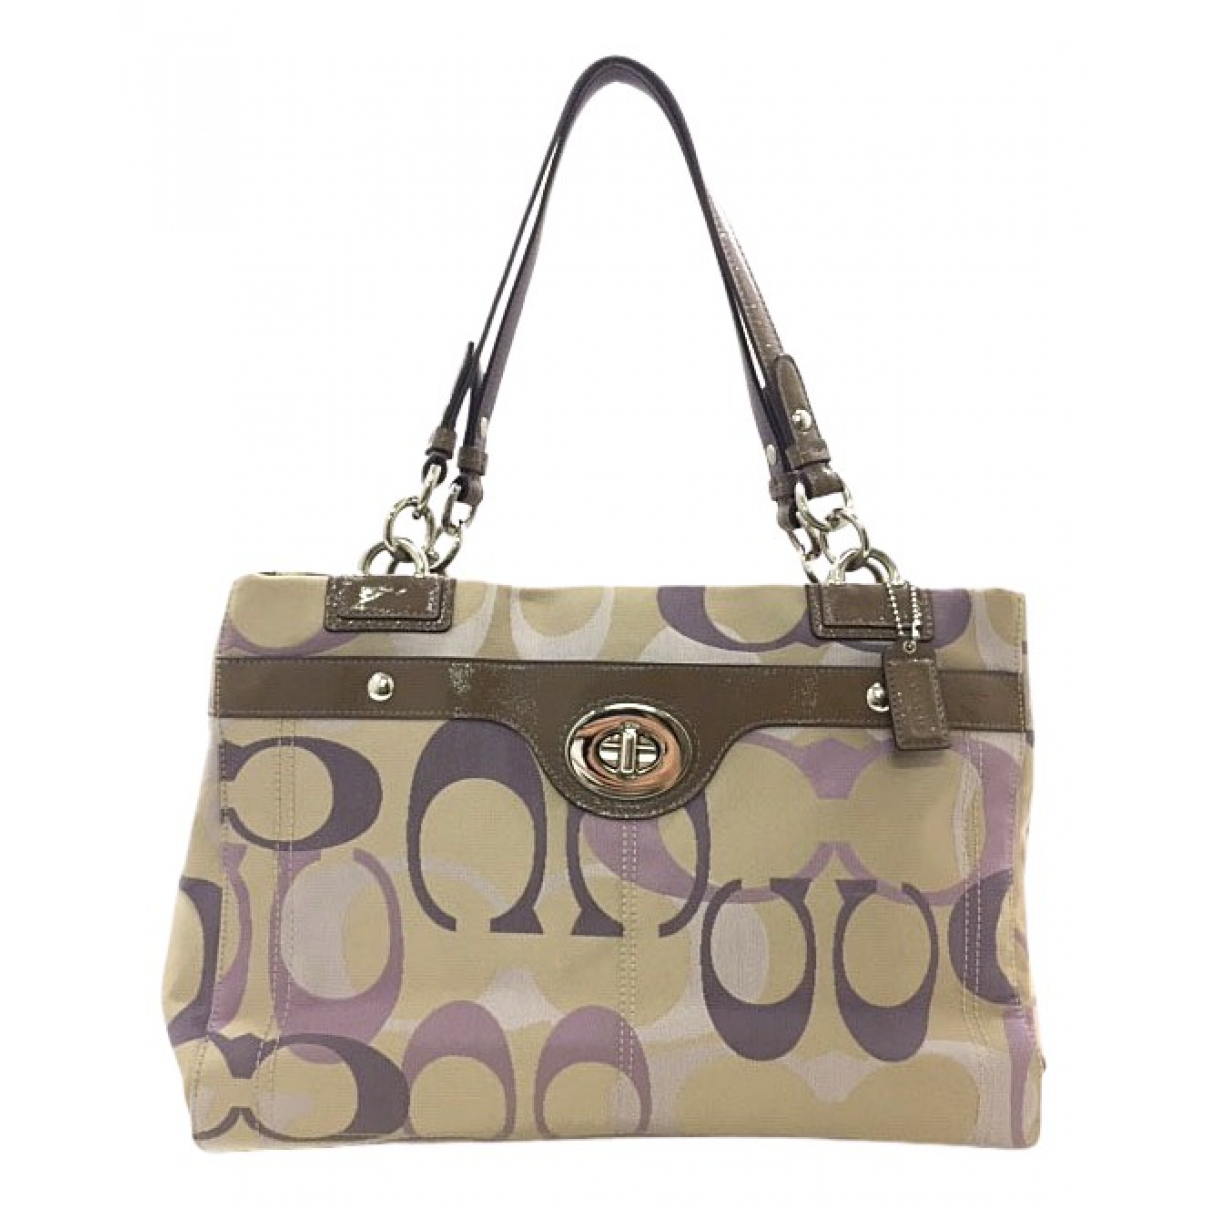 Coach \N Beige Cloth handbag for Women \N